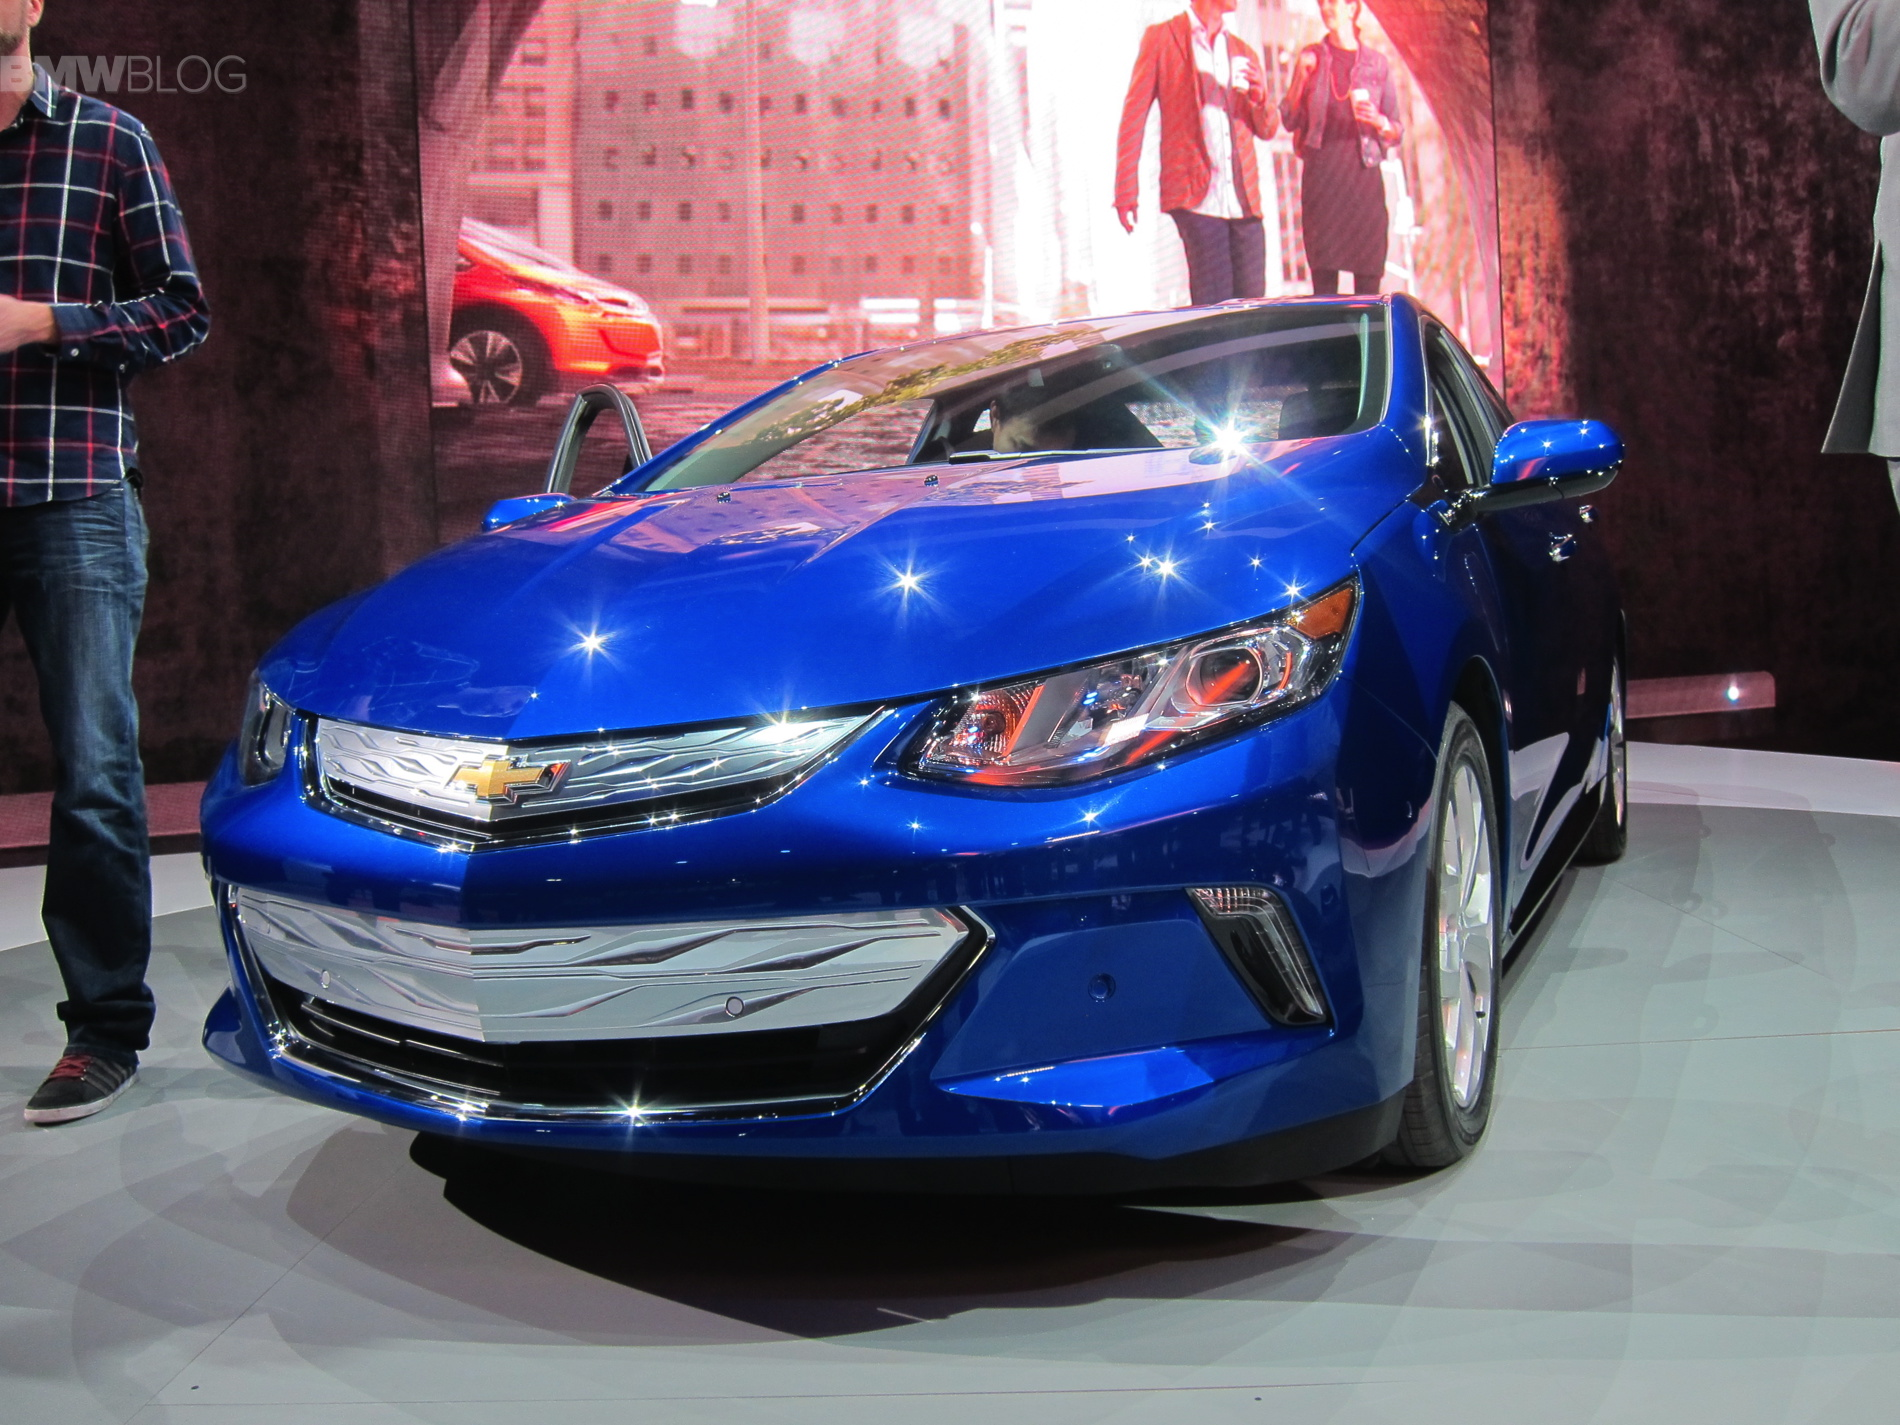 2015 chevy volt detroit 03